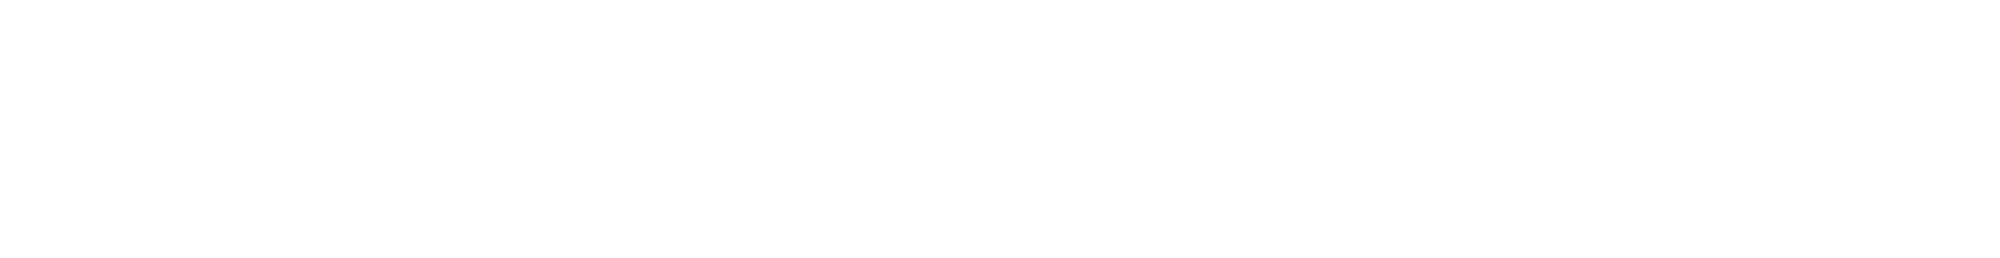 masthead-text.png